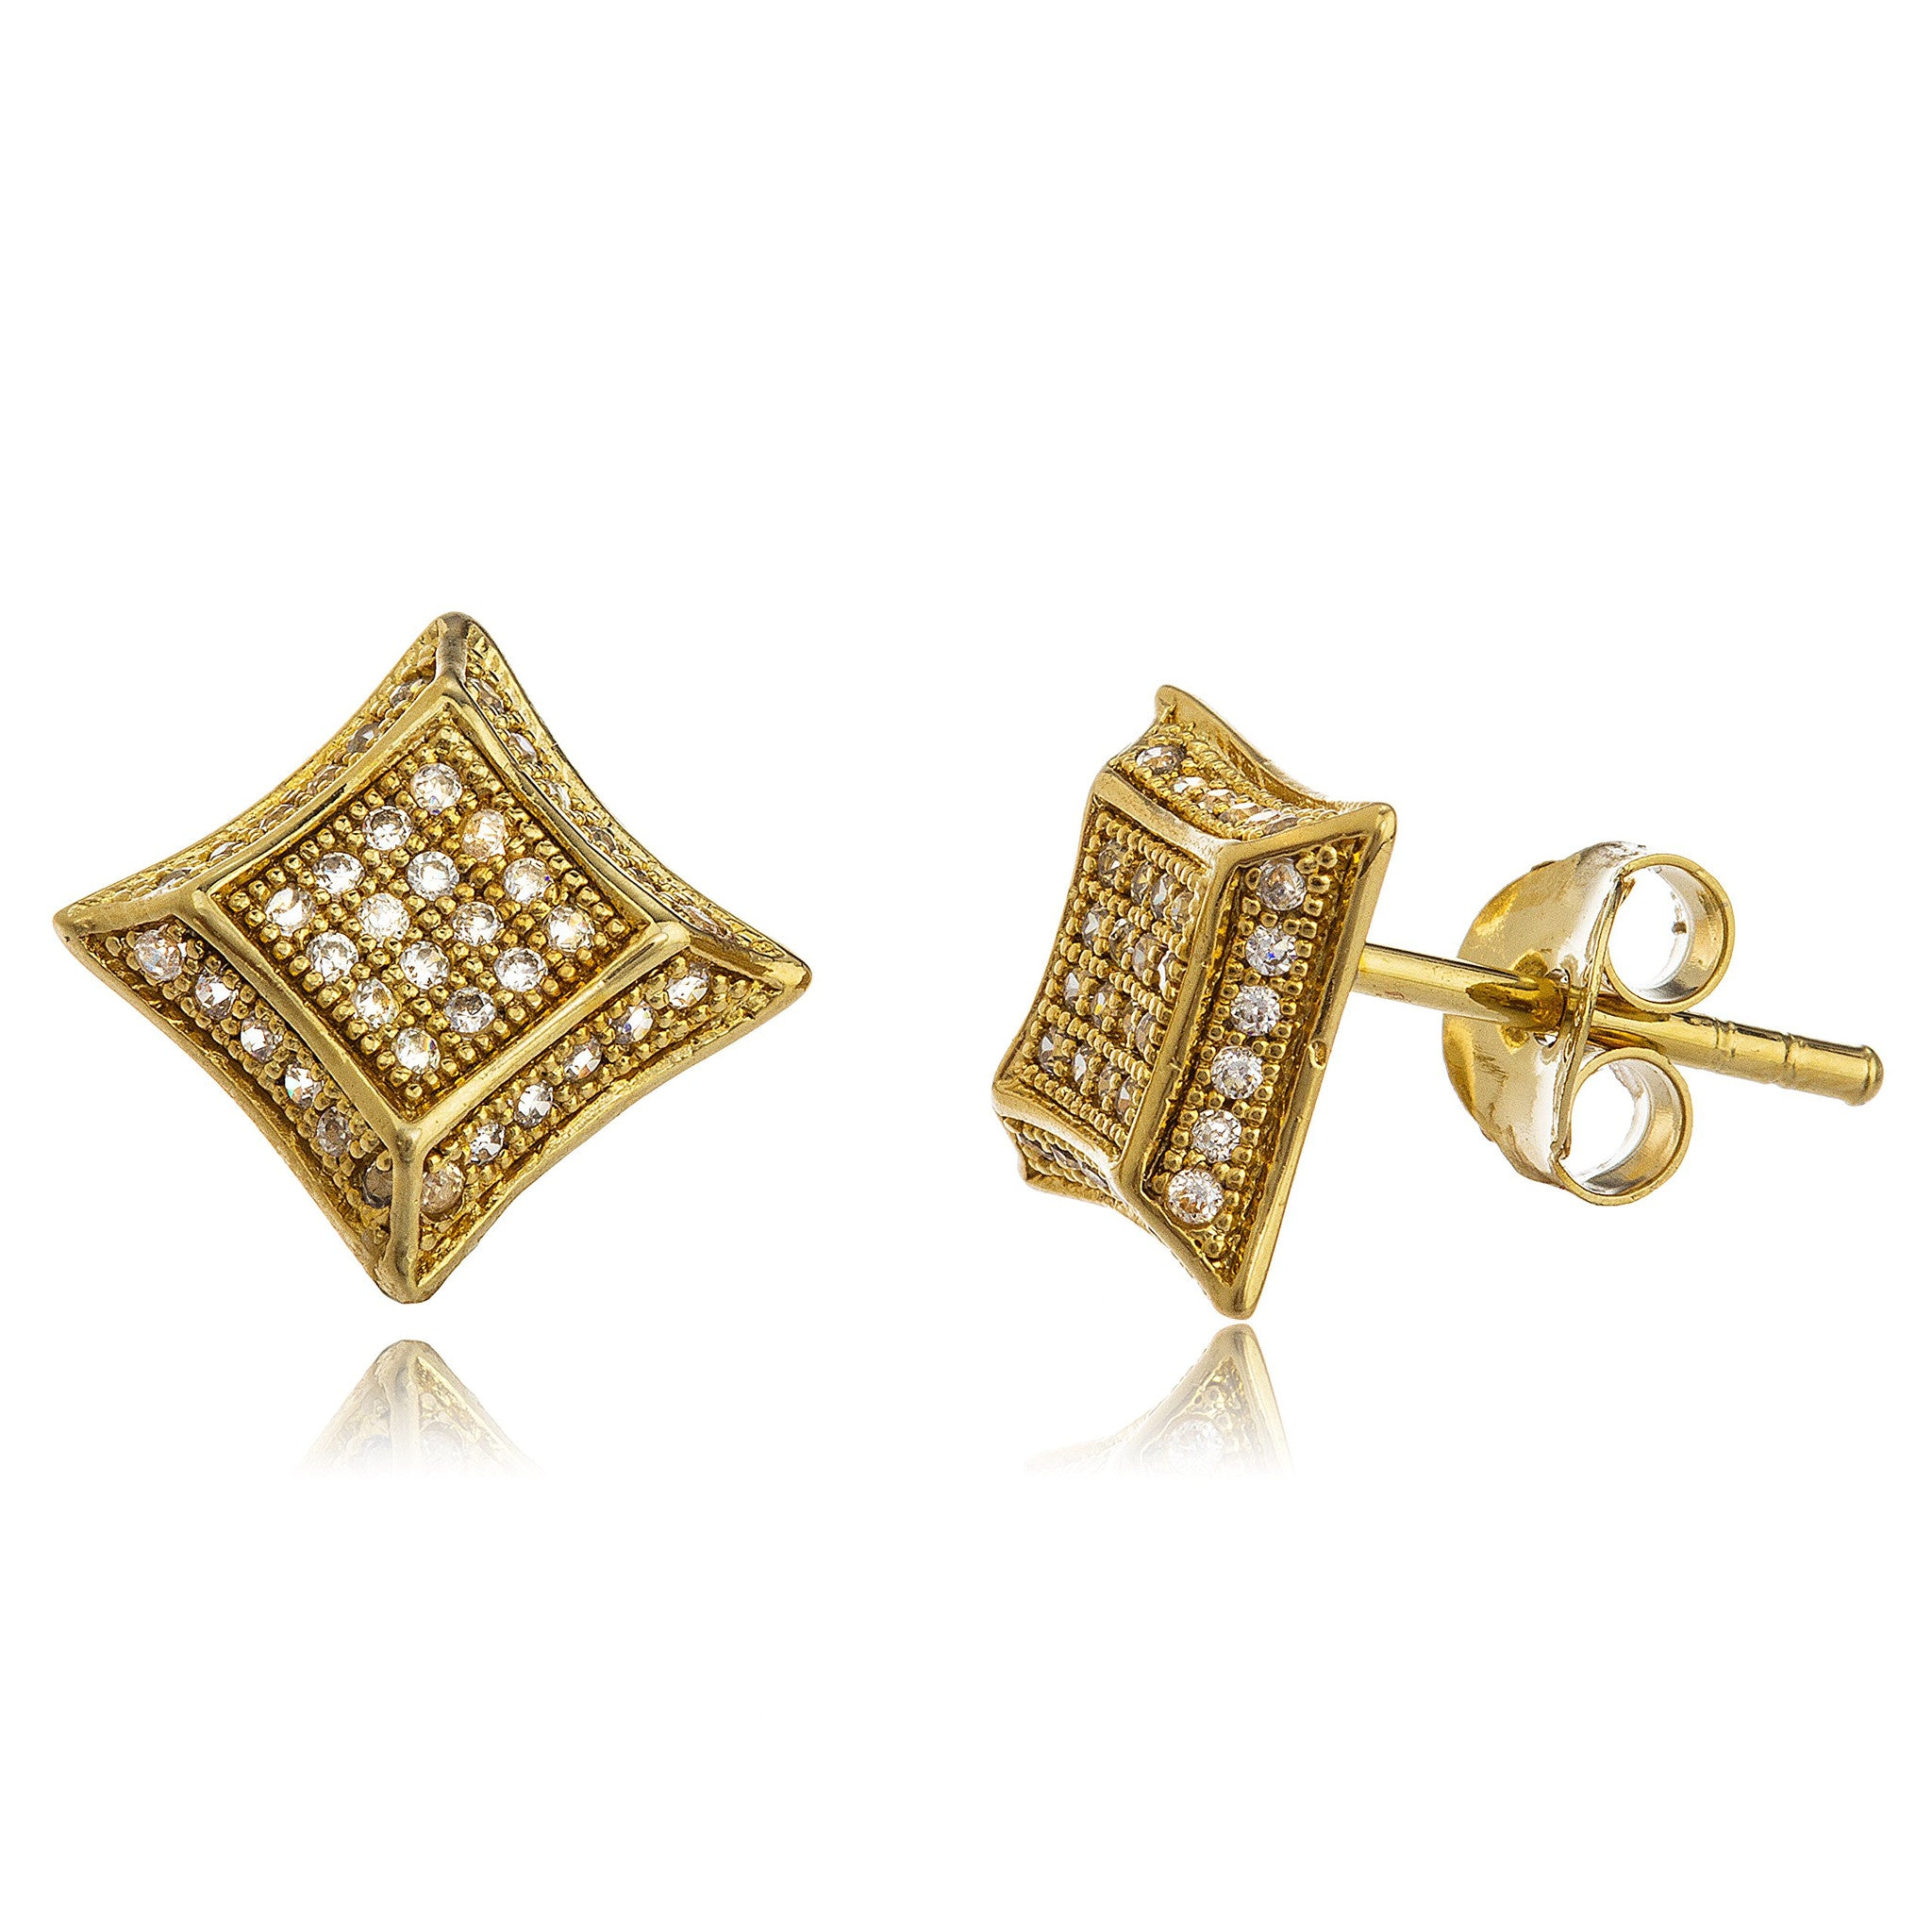 marcassite.com Real 925 Sterling Silver Swiss Marcasite Lady Di Style Earrings with Cz and Silver Simulated Pearl